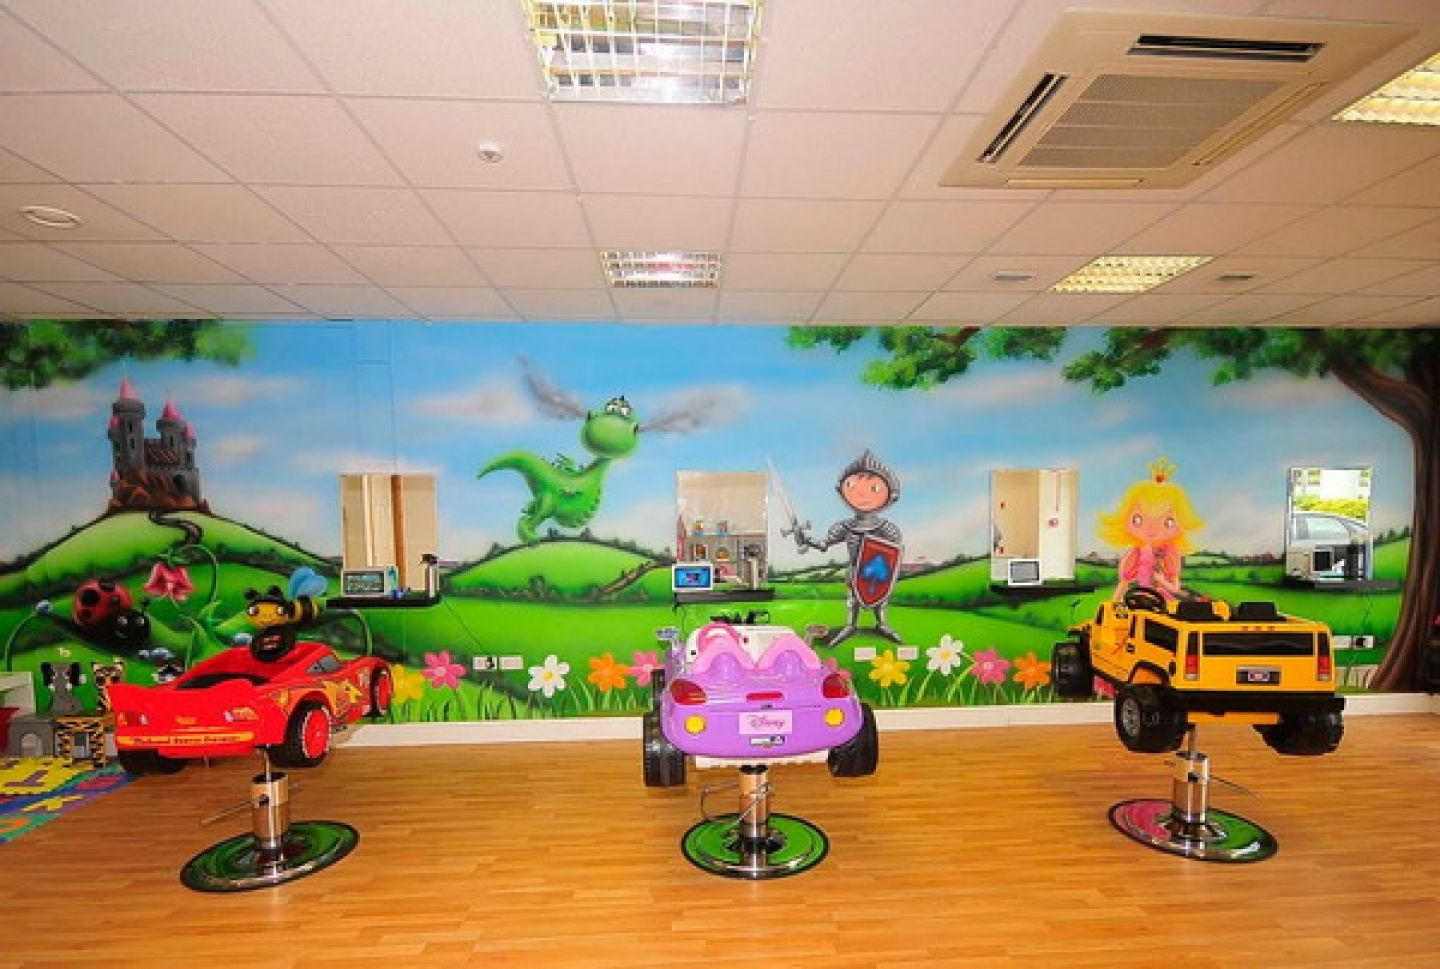 Wall murals comics interior kids bedroom design wallpaper photos wall murals comics interior kids bedroom design wallpaper photos cool rugby bedrooms mural ideas amipublicfo Image collections